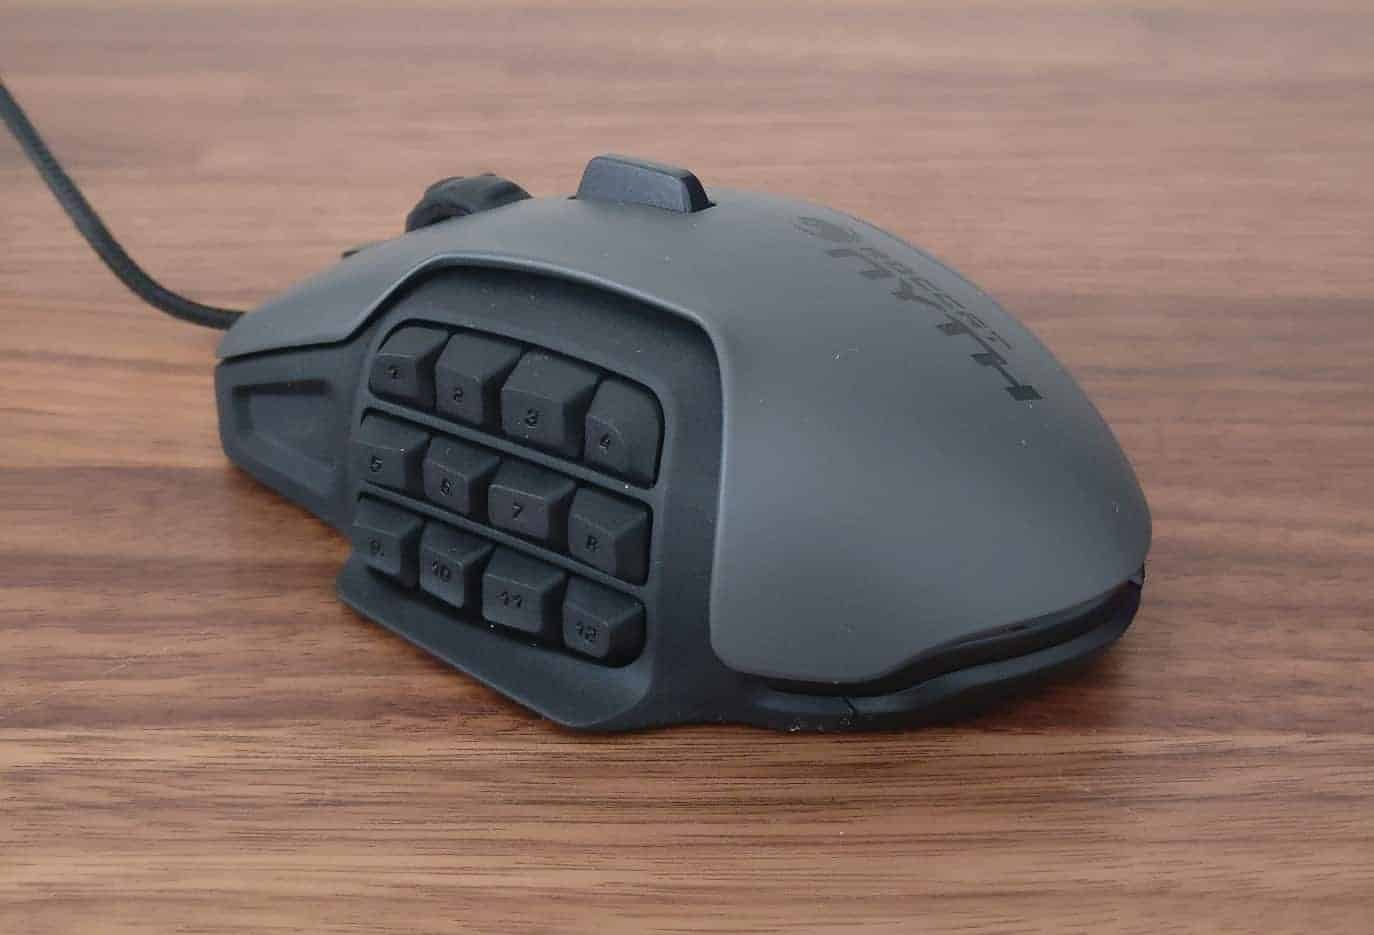 Roccat-Nyth-Photos17 Roccat Nyth Gaming Mouse Review